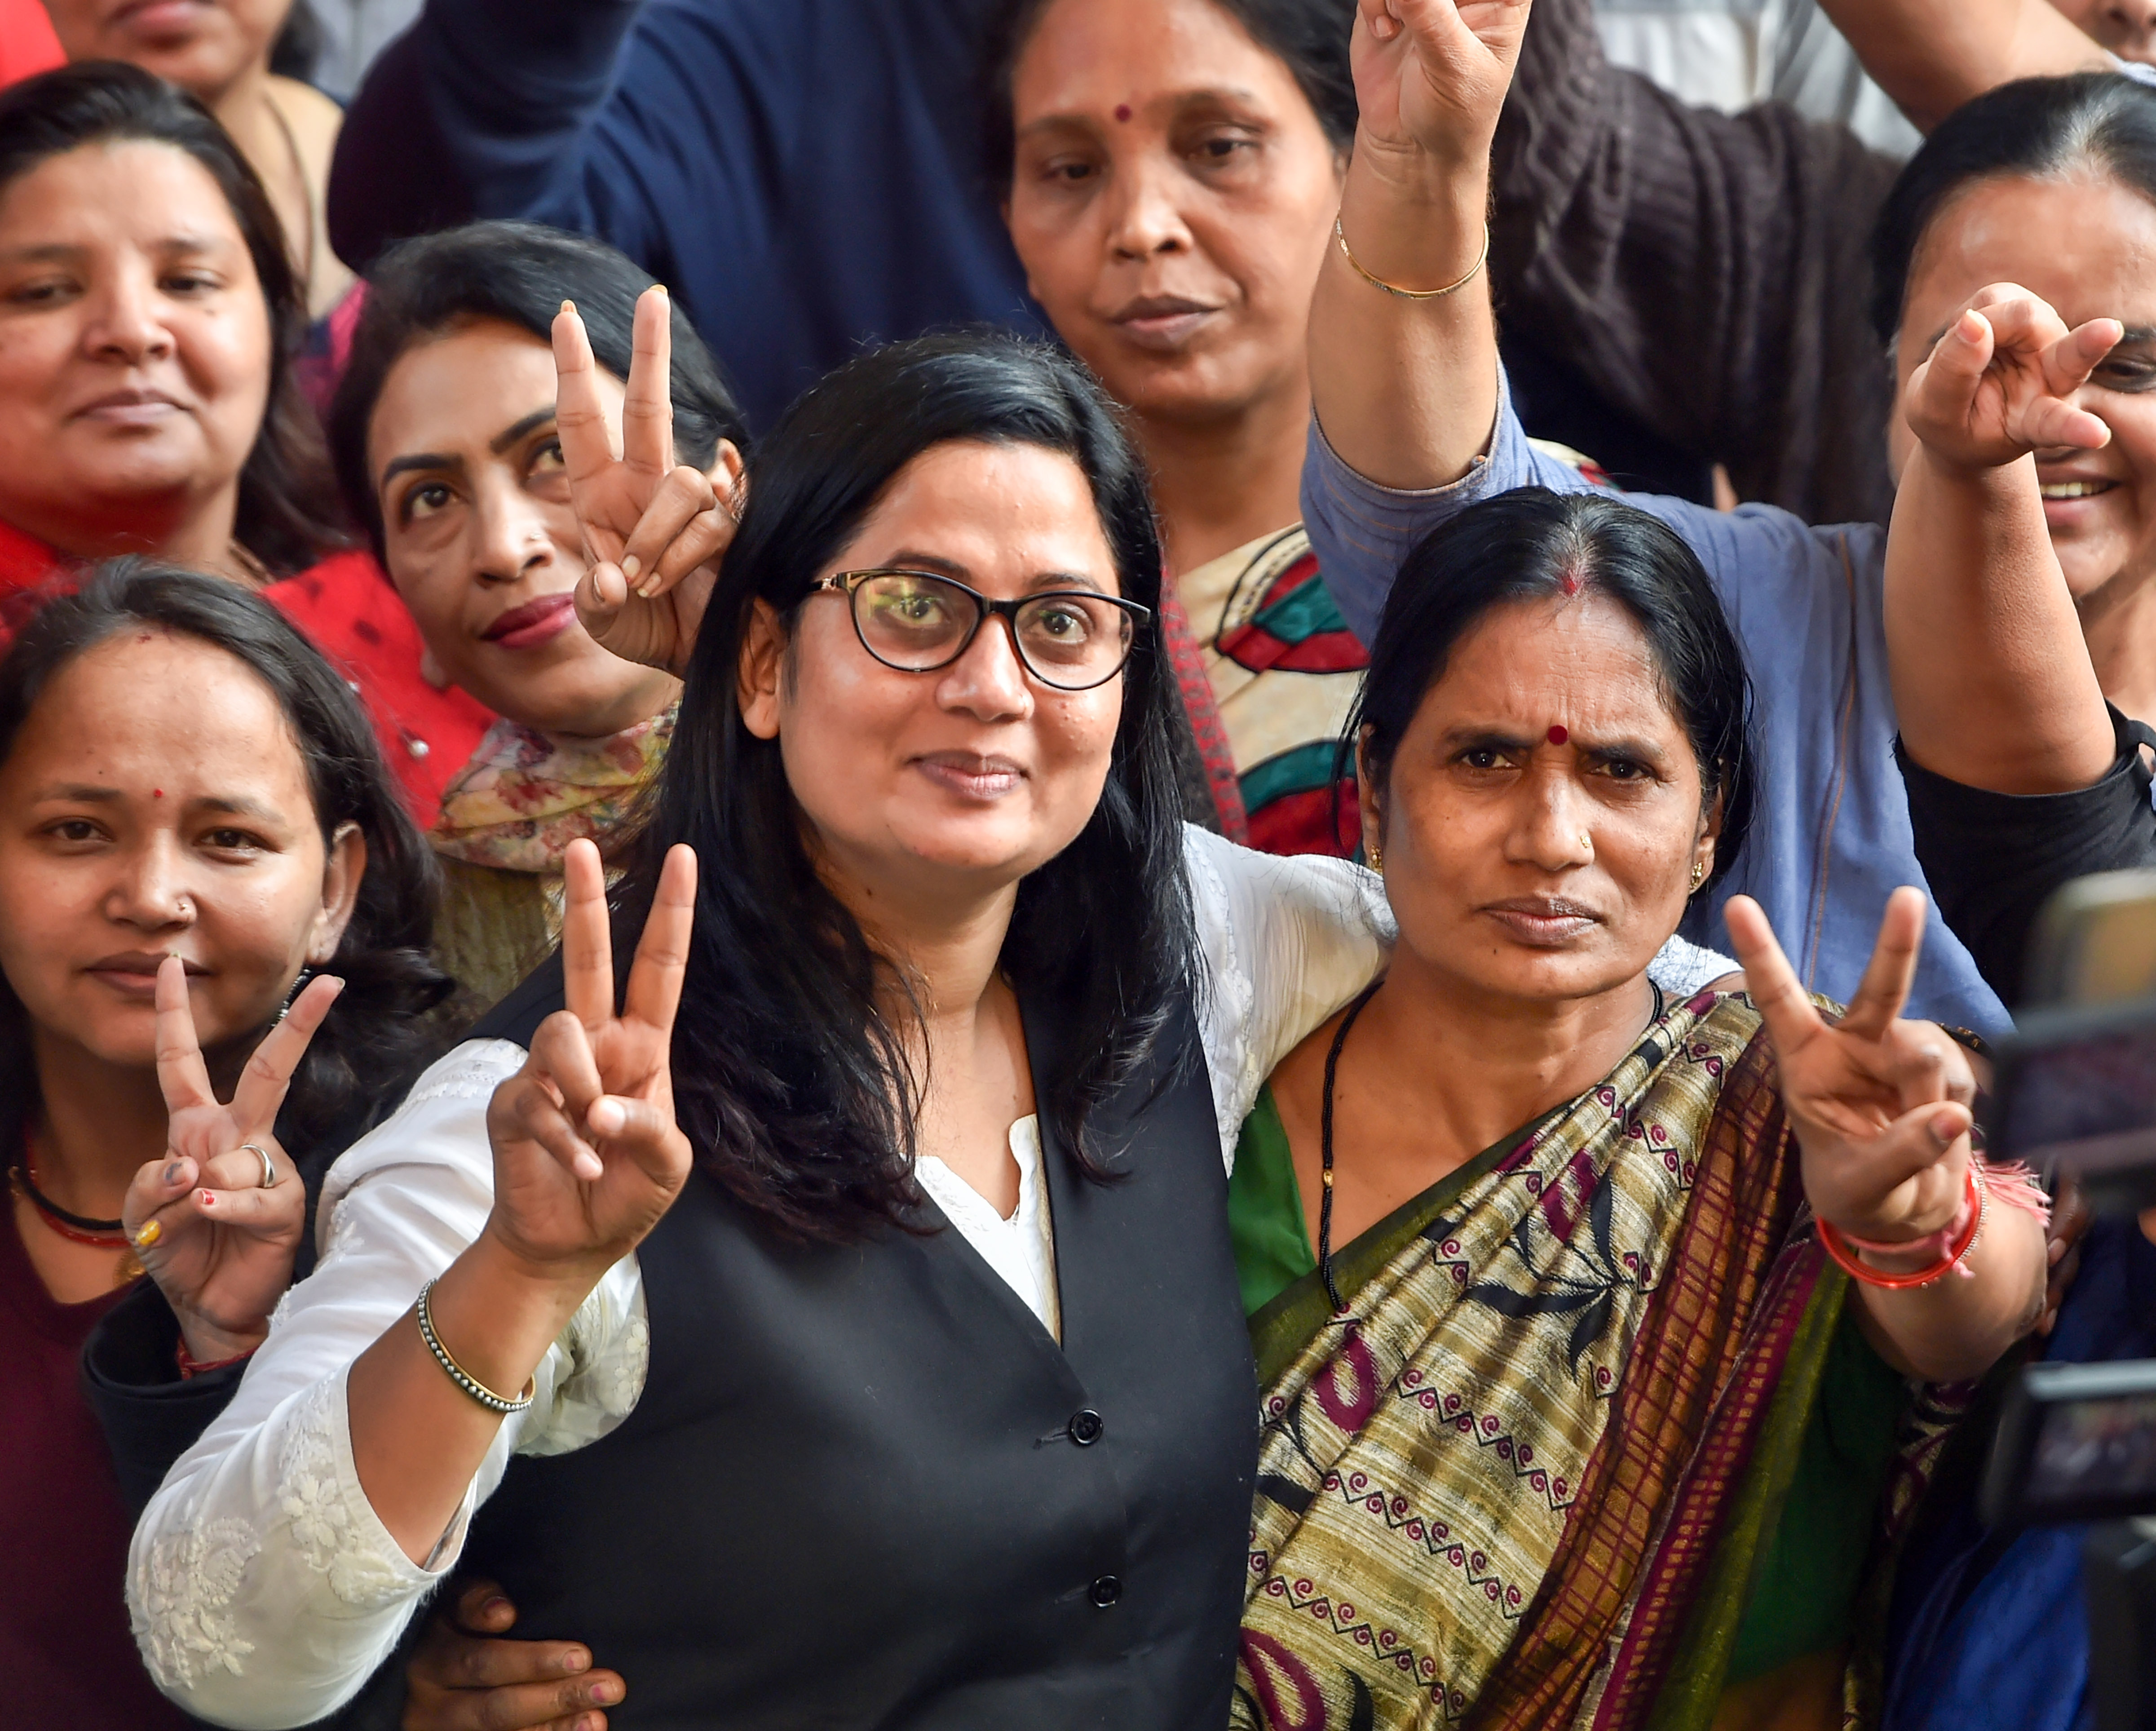 Nirbhaya rape and murder case victims mother (R) with her lawyer Seema Kushwaha gesture after four men convicted of the crime were executed inside Tihar jail, in Dwarka, New Delhi, Friday morning, March 20, 2020.